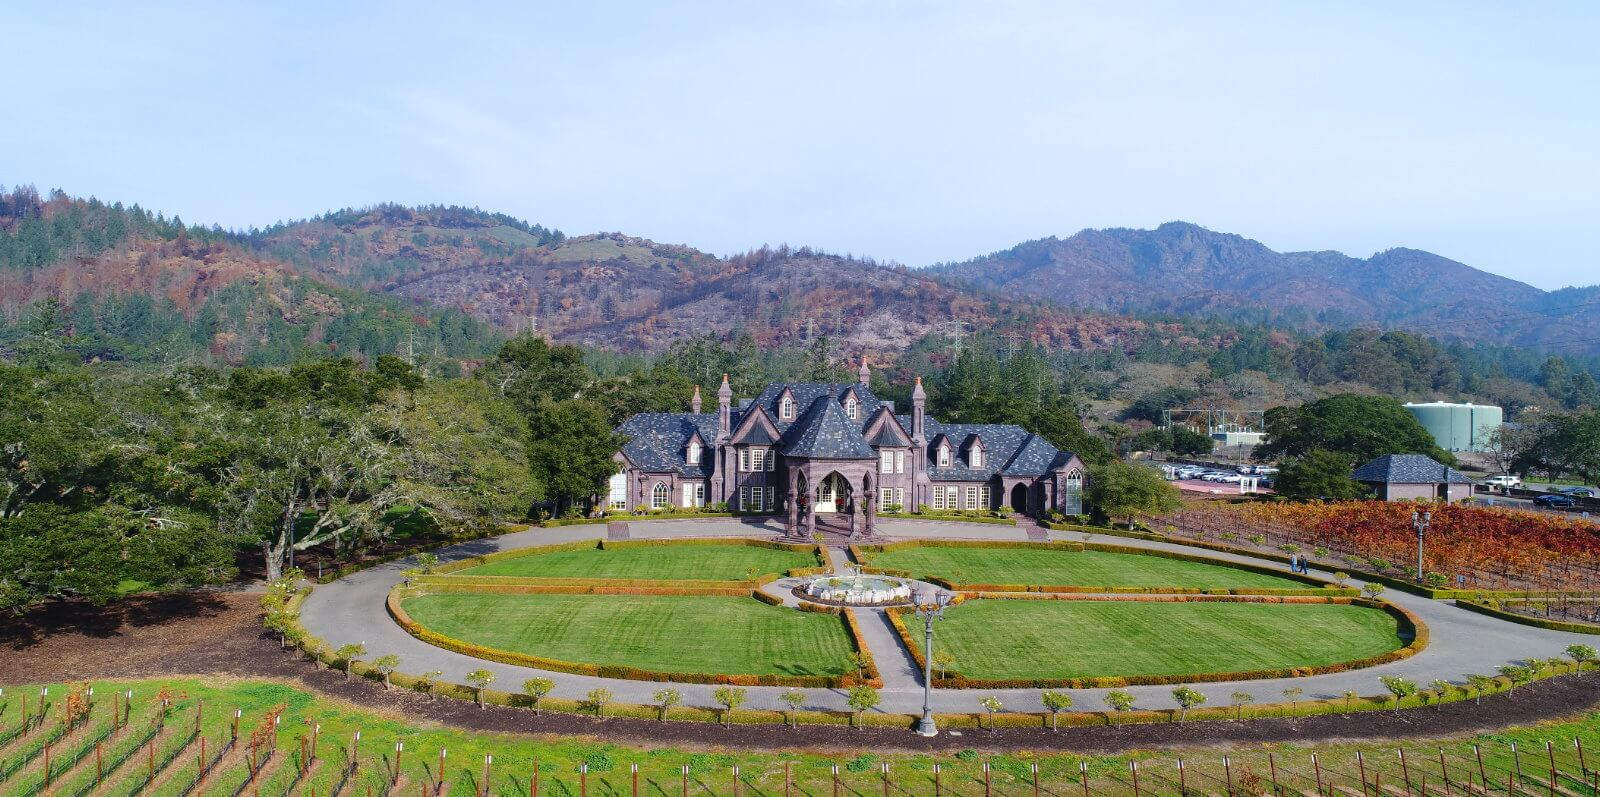 Sonoma-Valley-Wine-Tours-Sonoma-County-Things-to-See